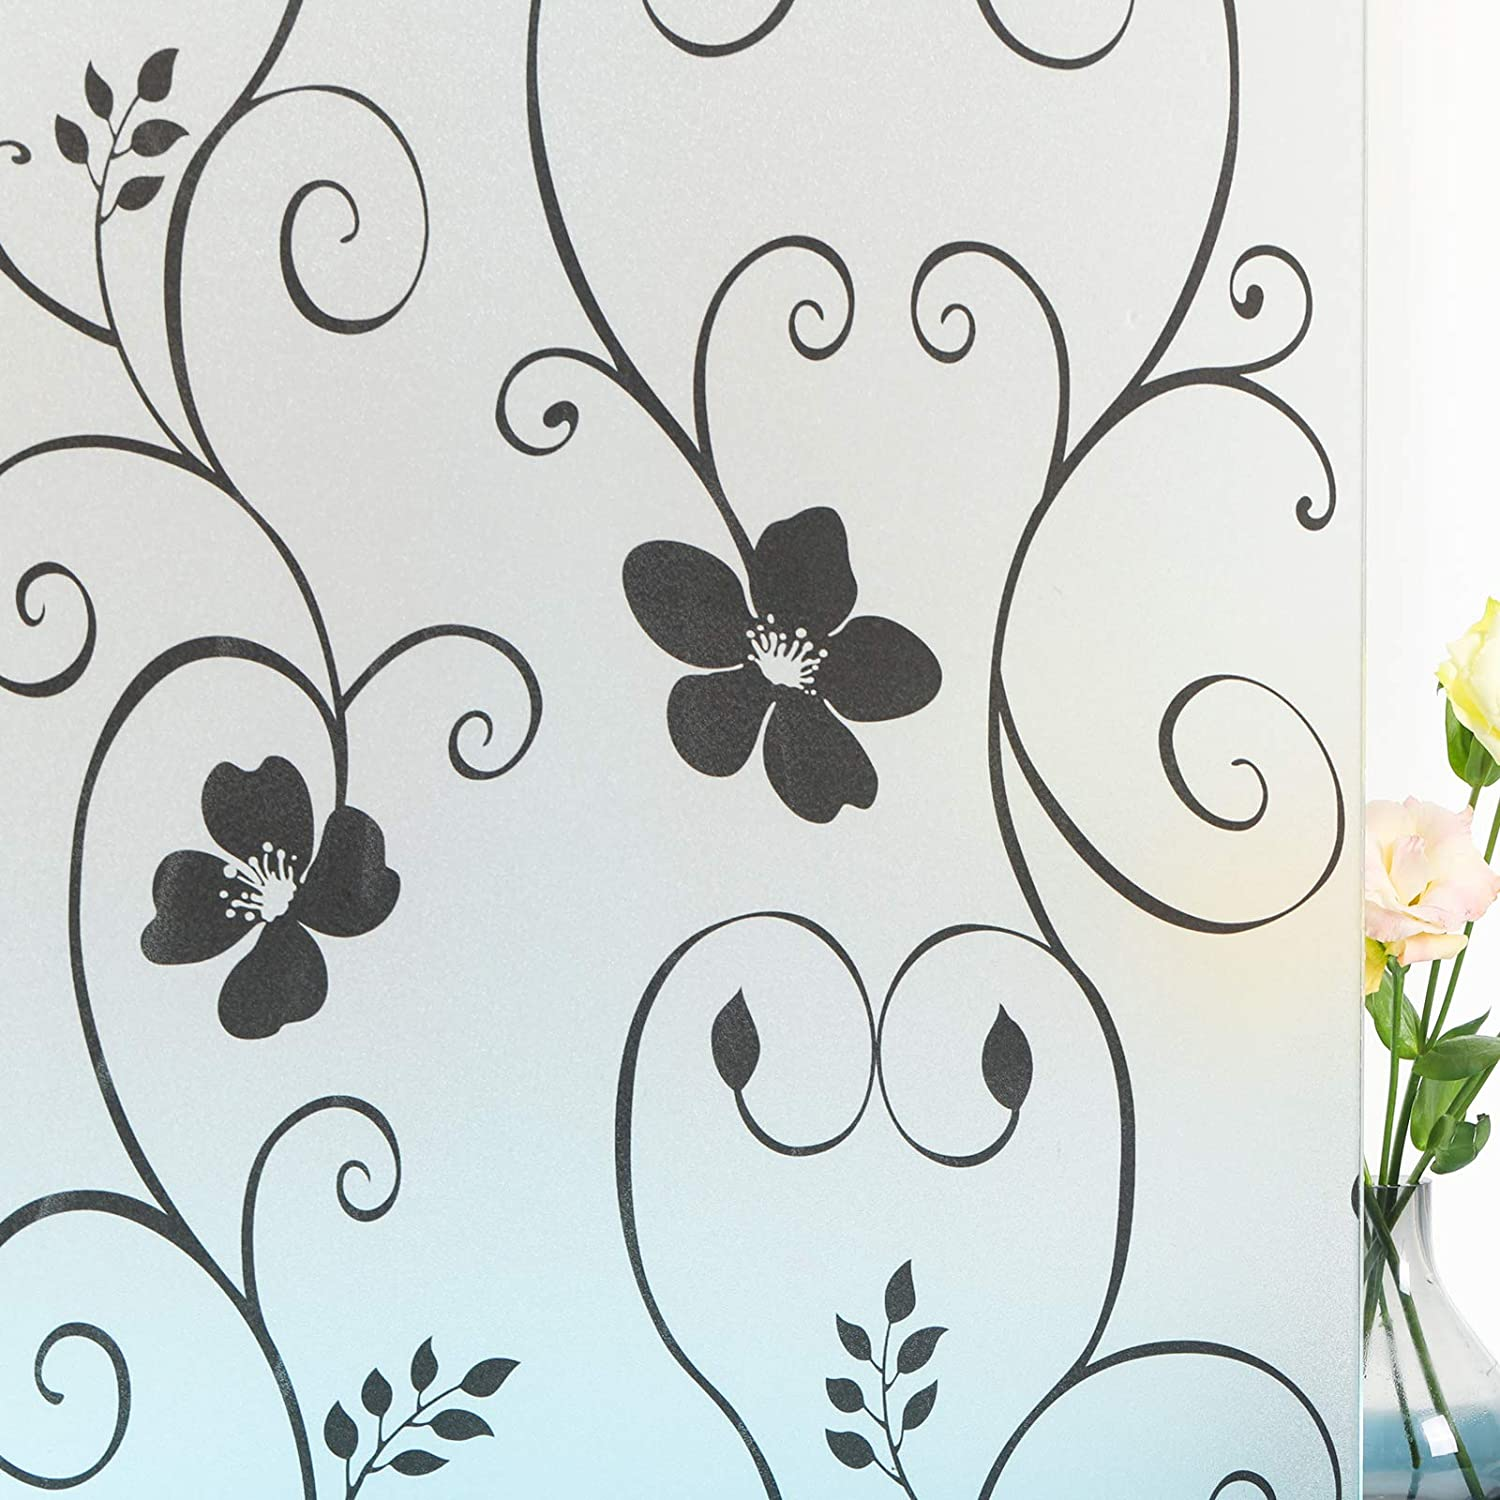 Mikomer Decorative Window Film,Black Flower Static Cling Privacy Door Film, Non Adhesive Heat Control Anti UV Window Cling for Office and Home,17.5 inches by 78.7 inches